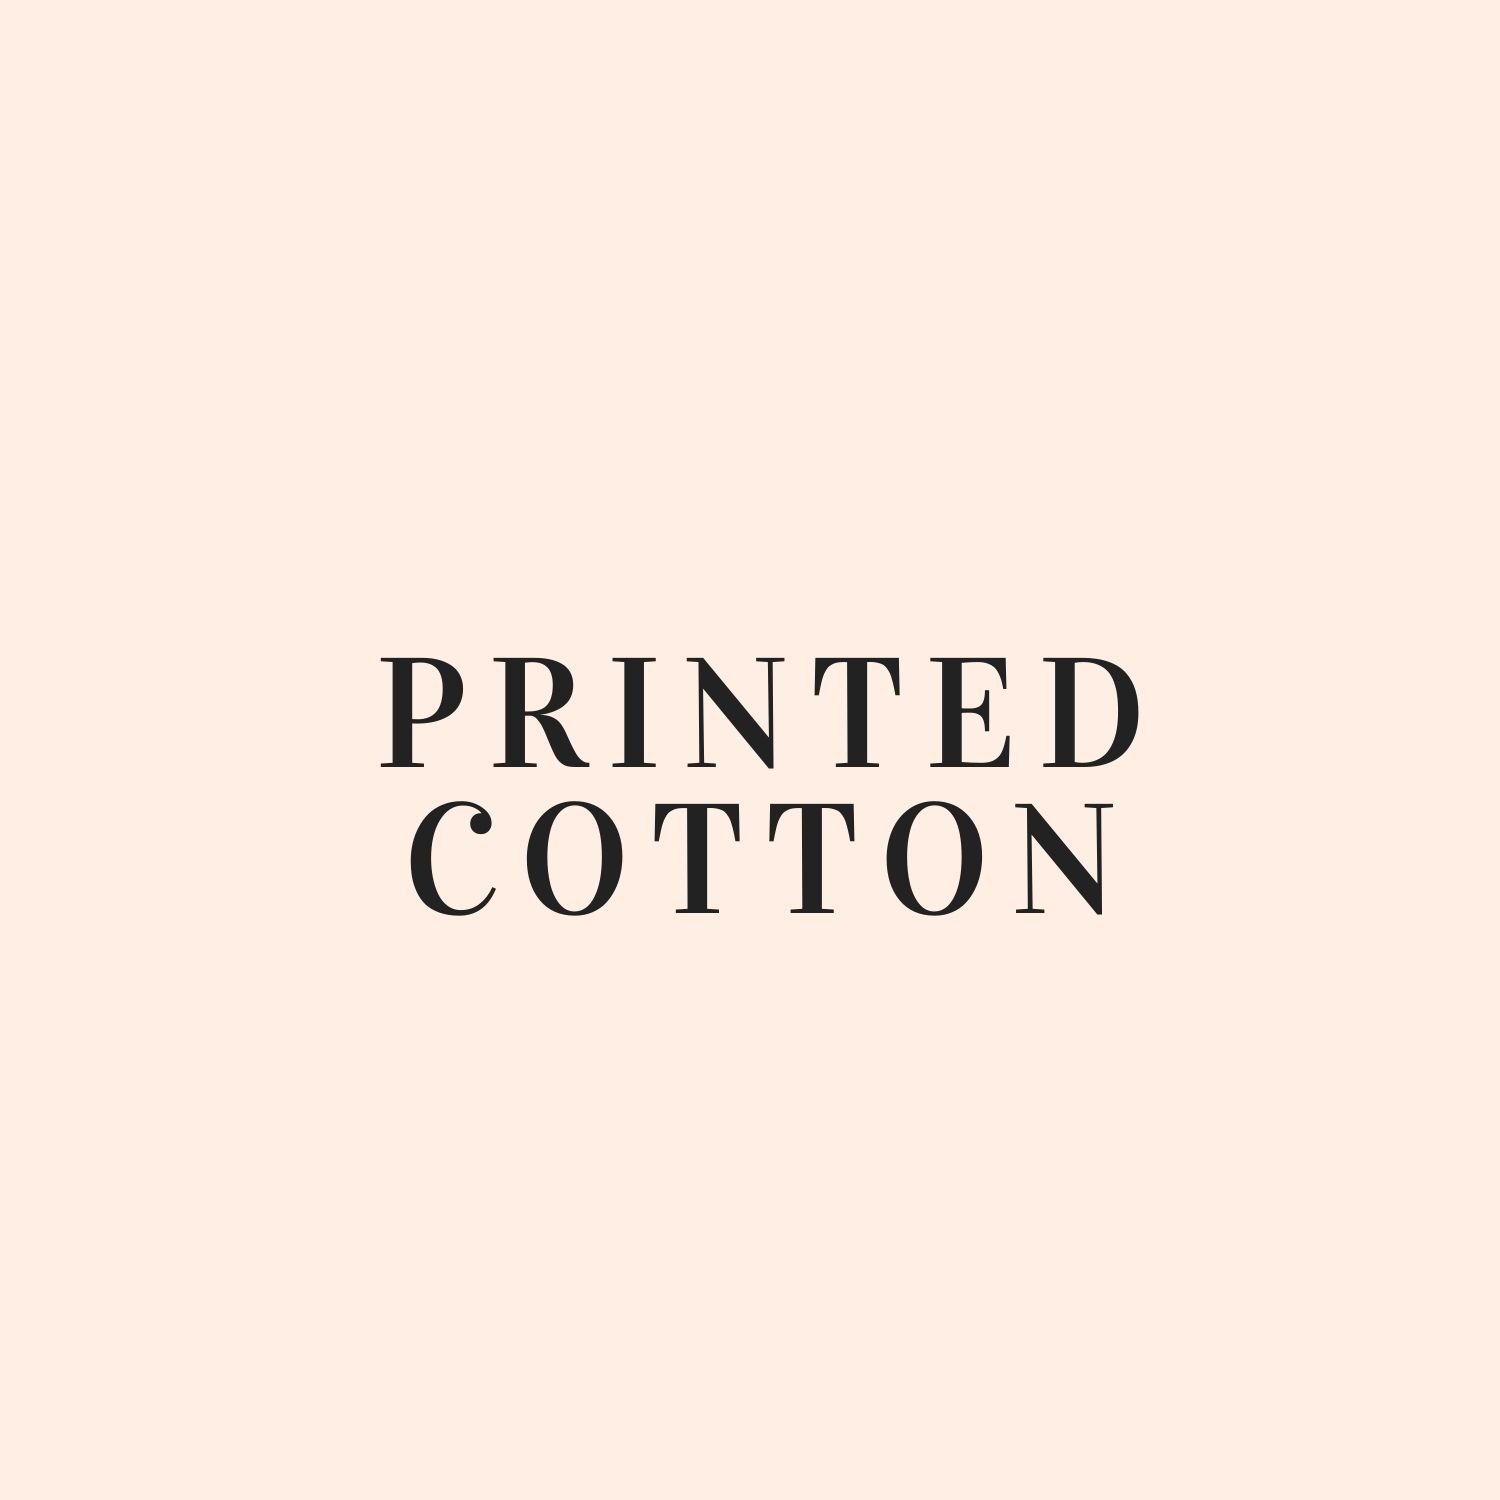 Printed Cotton